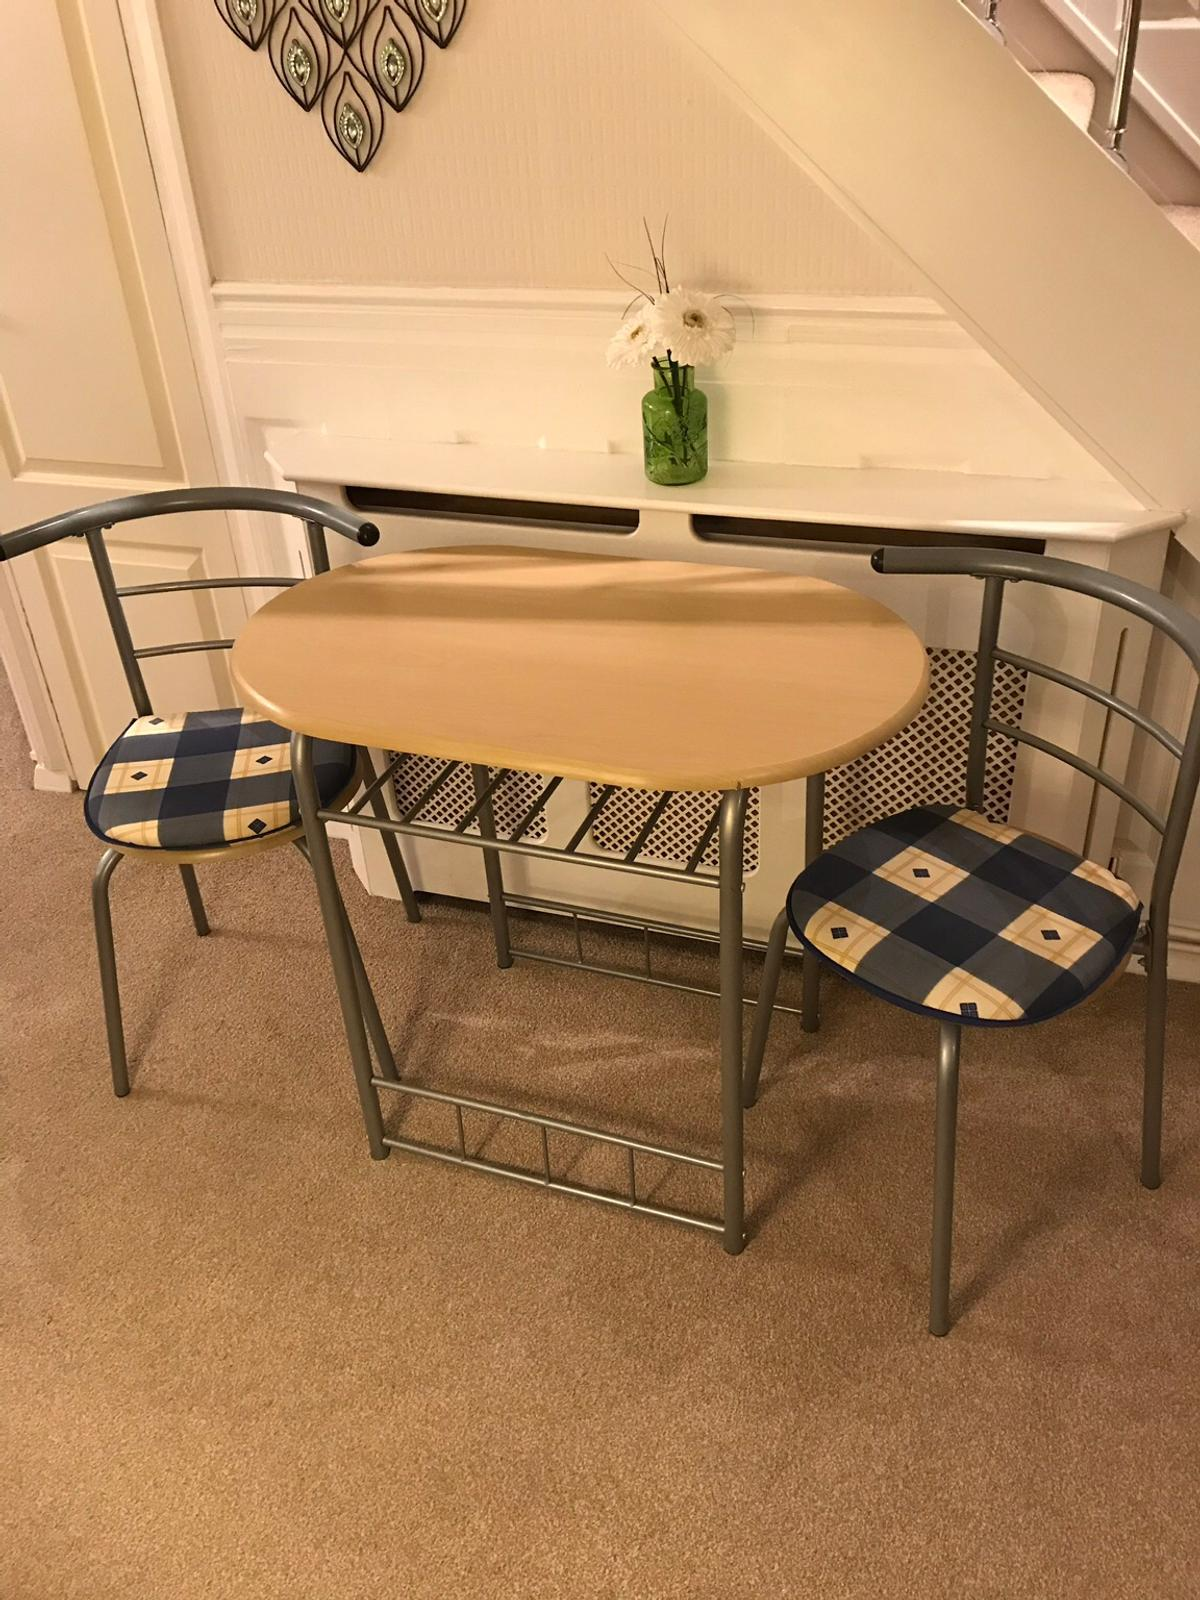 Small Dining Table 2 Chairs In Braintree Fur 30 00 Zum Verkauf Shpock At